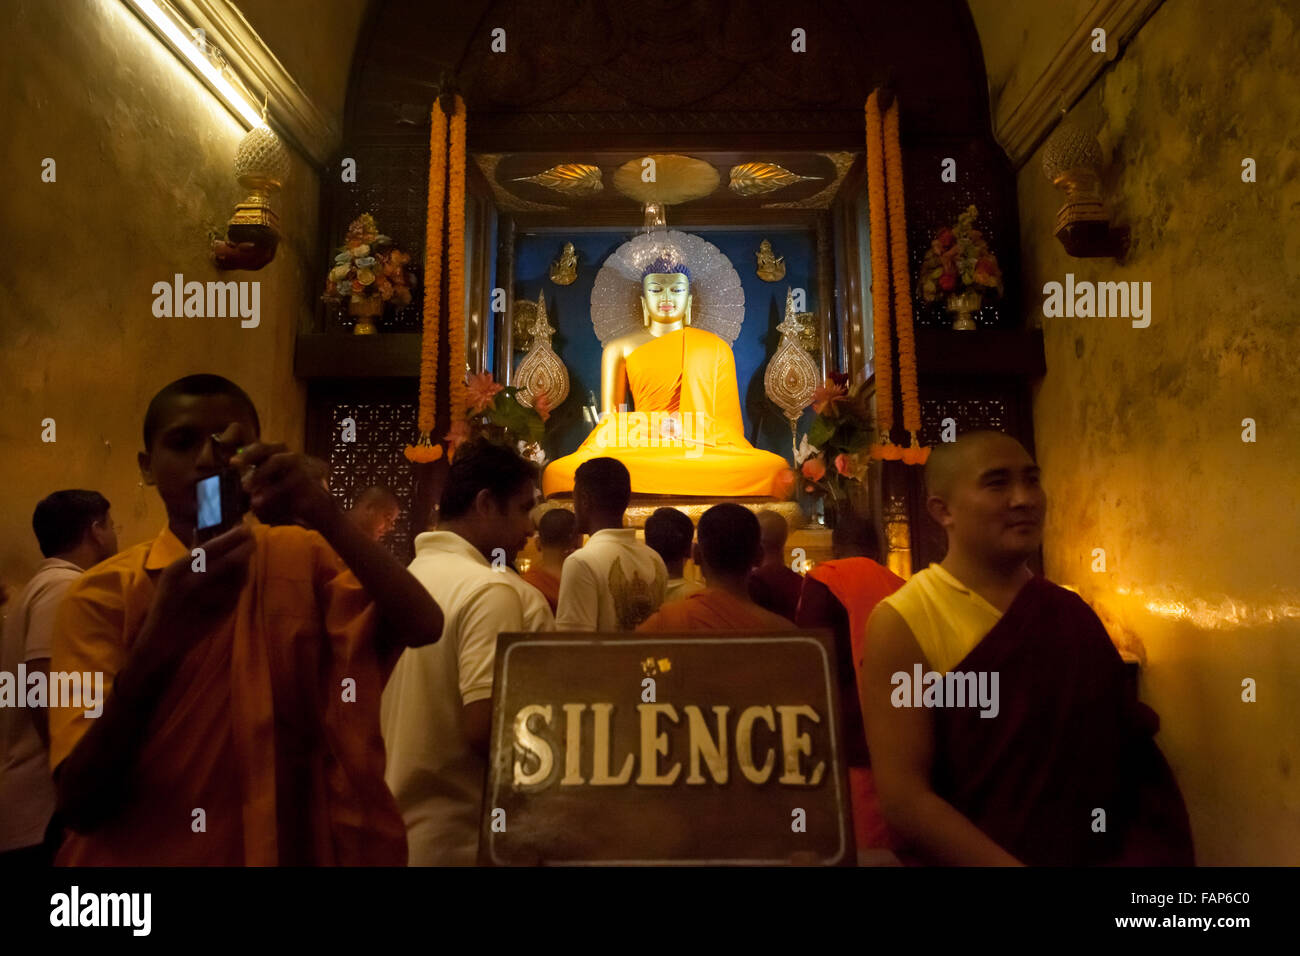 Crowd in queue to offer prayers inside Buddha statue chamber at Mahabodhi Temple, India. - Stock Image